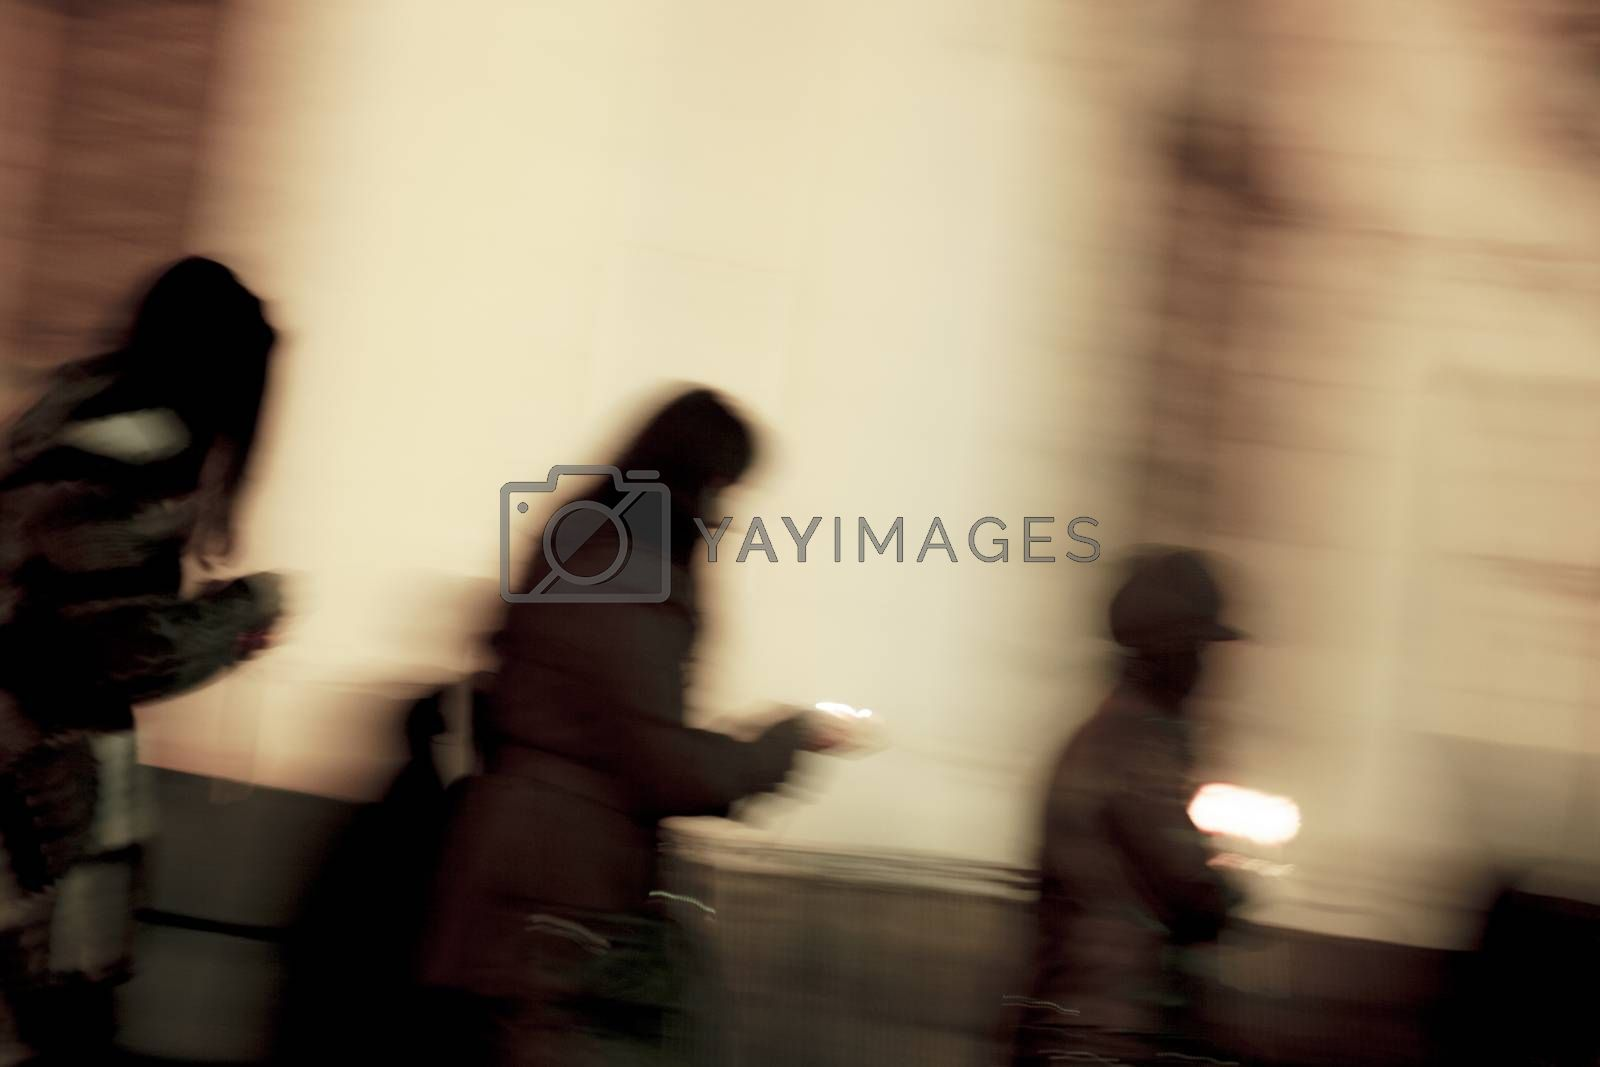 A blurred image of people with candles in their hands mourning or celebrating outdoors. Sepia colored. Night.